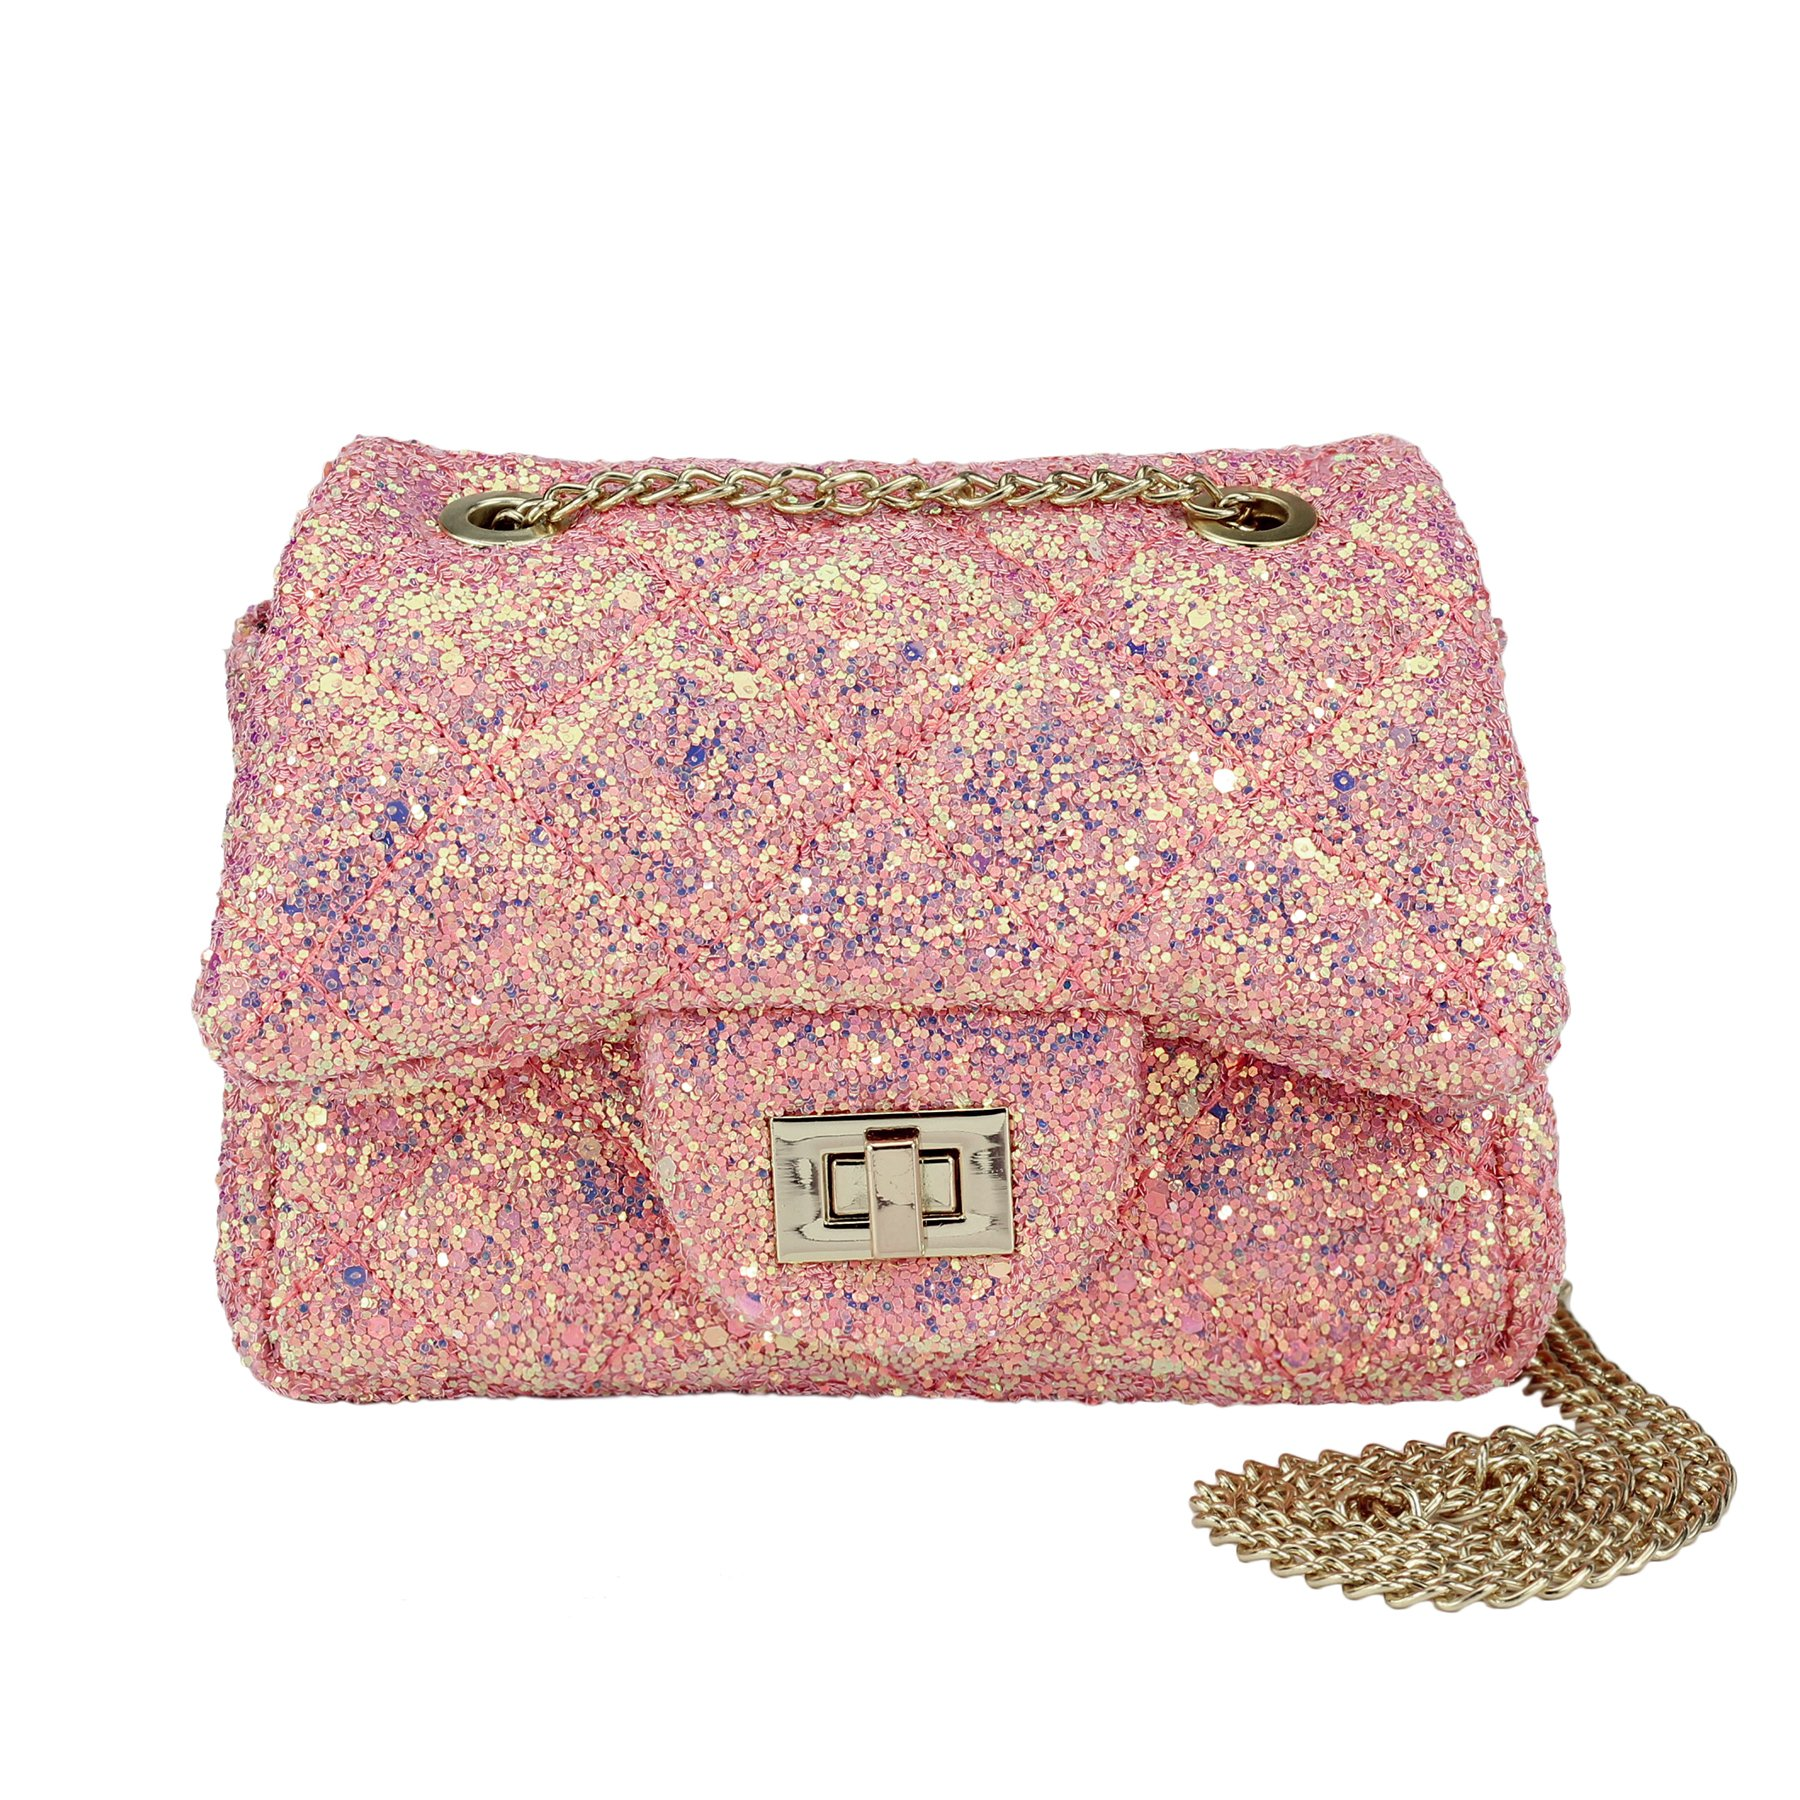 CMK Trendy Kids Glitter Toddler Purse for Girls Sparkly Quilted Little Girl Purses (80001_Chunky Pink)